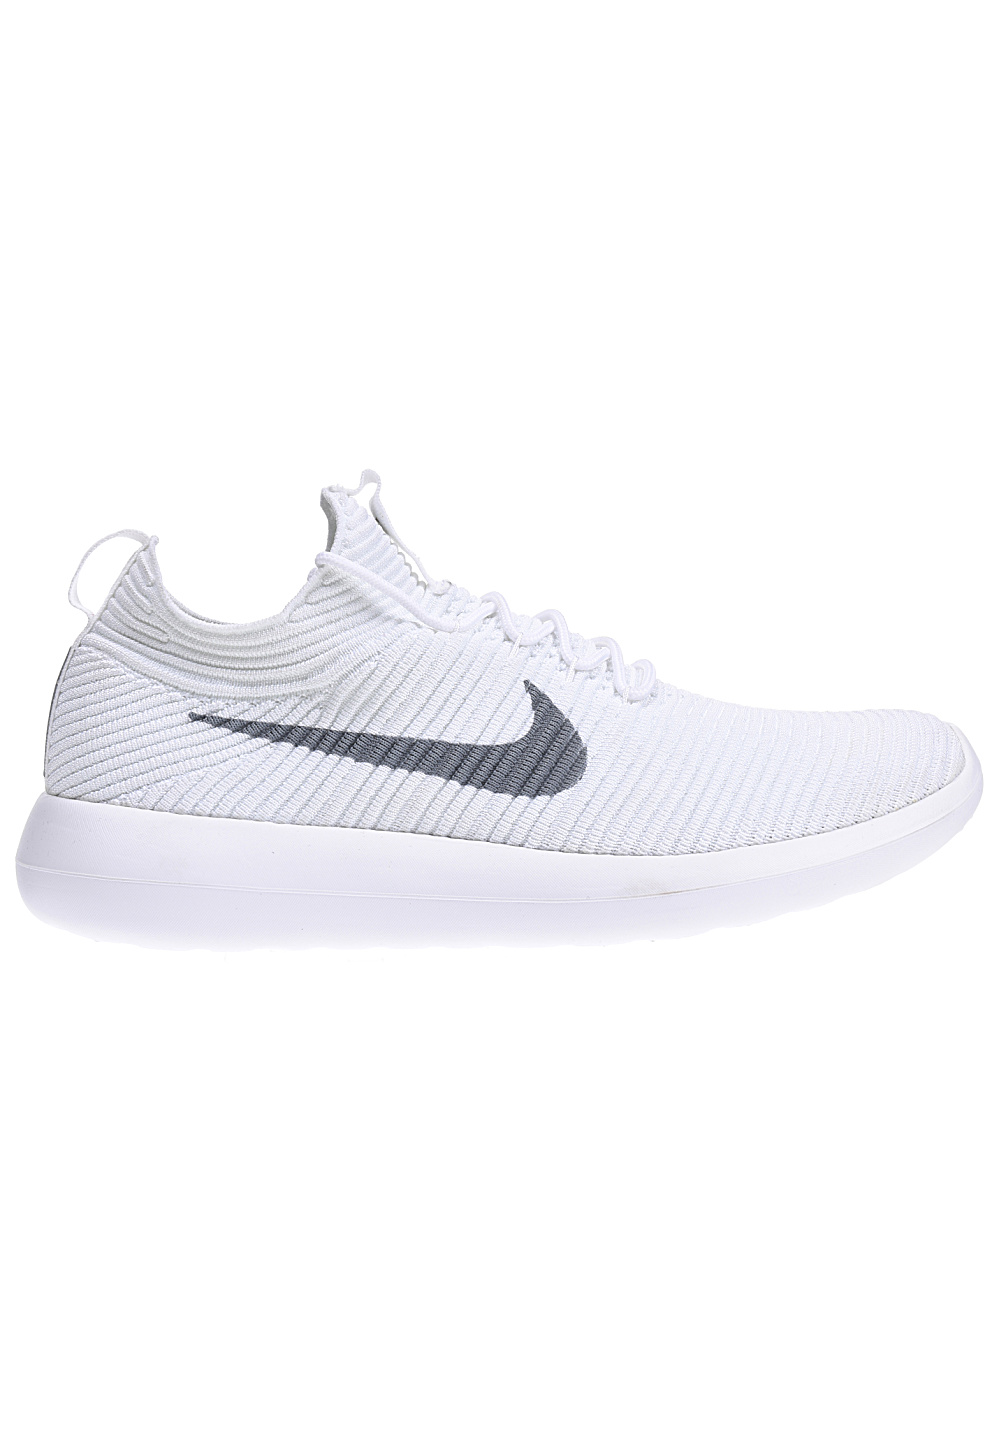 3915001dbc1e4 NIKE SPORTSWEAR Roshe Two Flyknit V2 - Sneakers for Men - White ...